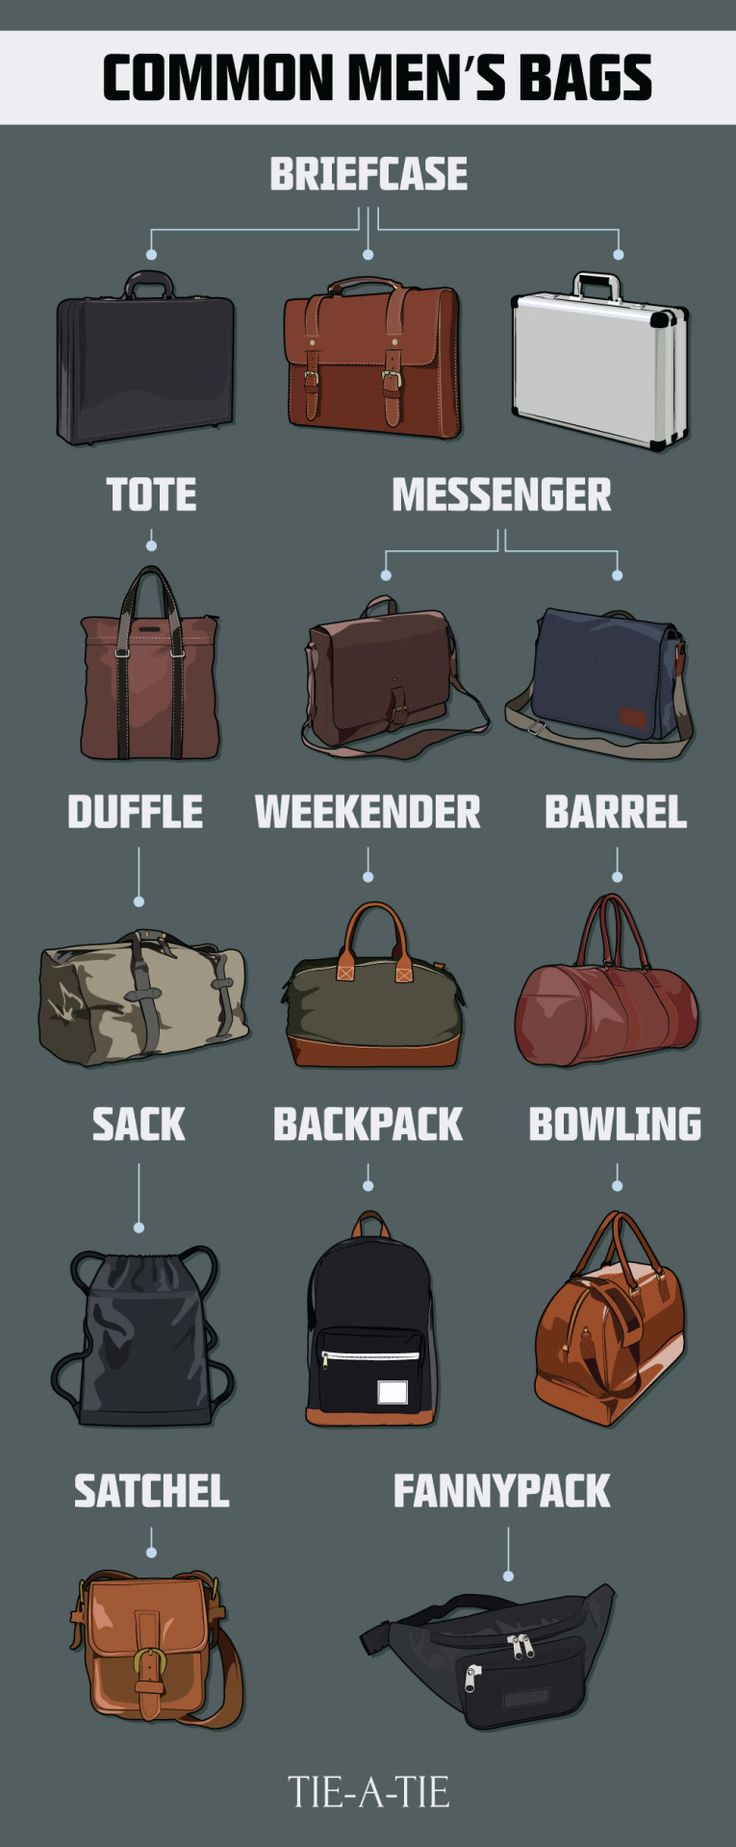 "bows-n-ties: """"It is not a murse, it is a Satchel. Indiana Jones wears one."" - quote from the Hangover. Click HERE to learn everything about men's bags, briefcases, and murses. """